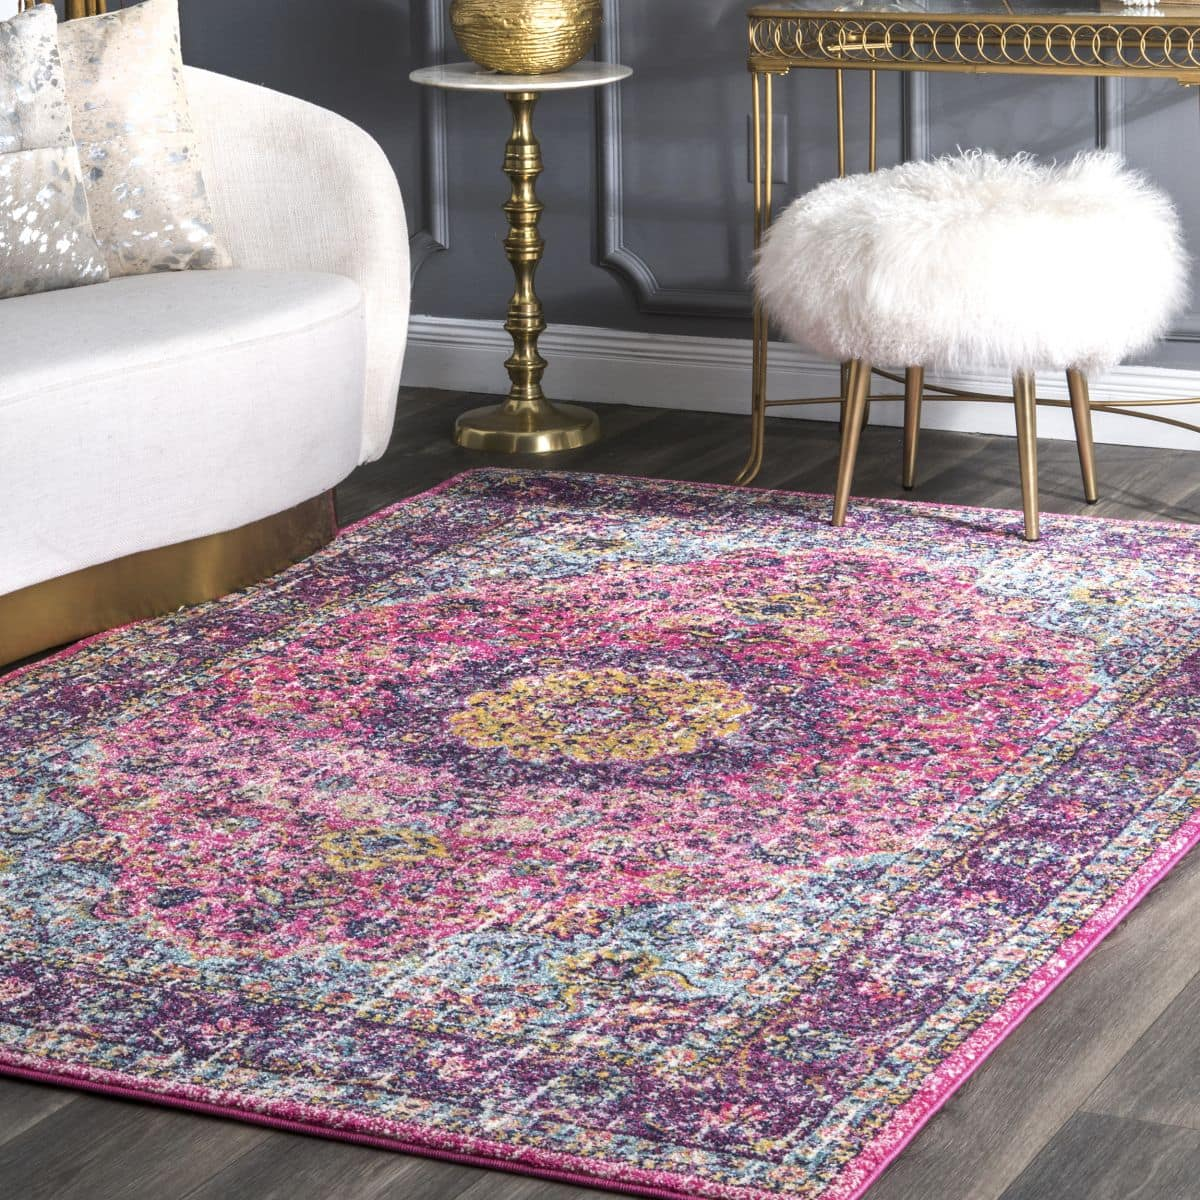 Add a Touch of Luxe With a Pink Persian Area Rug